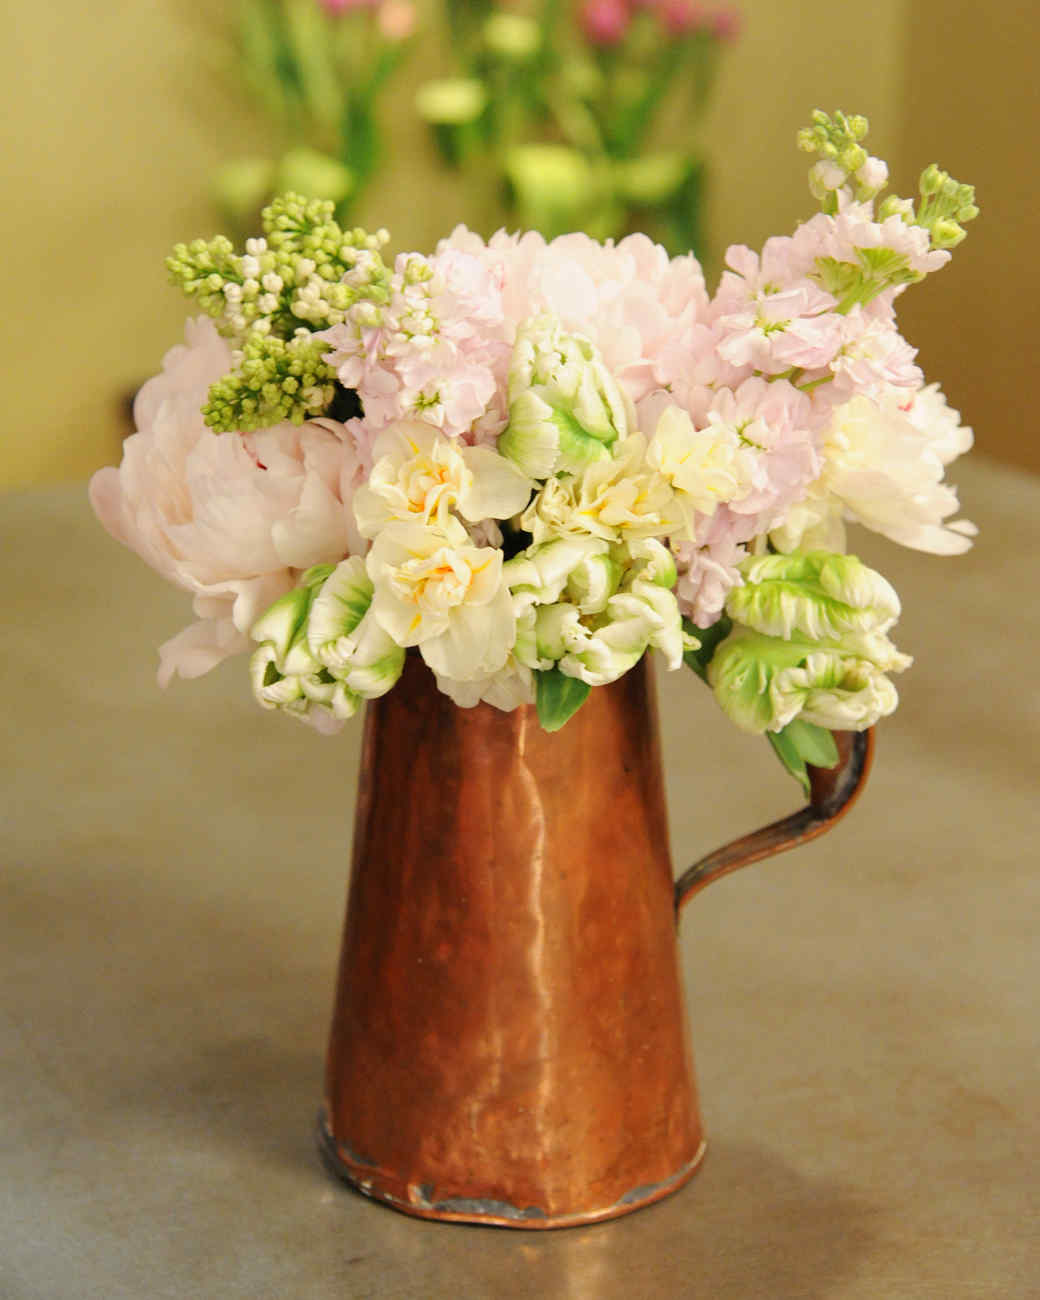 6142_042511_flower_arrangement.jpg